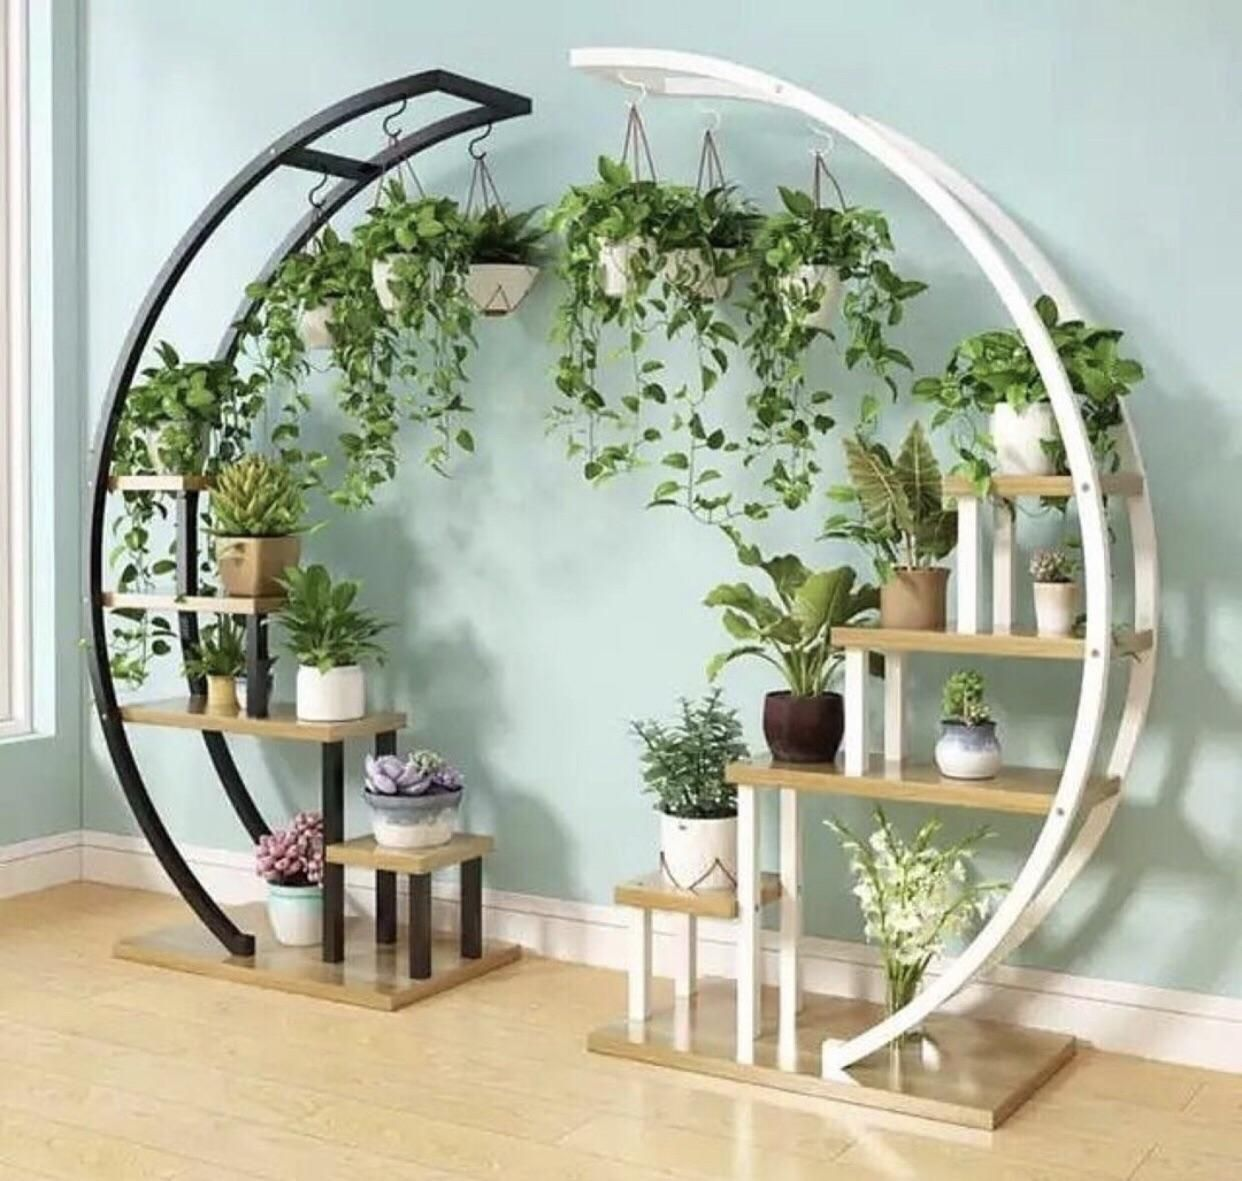 Photo of Glorious plant shelflike hangy plant contraption     houseplants,  #contraption #glorious #ha…